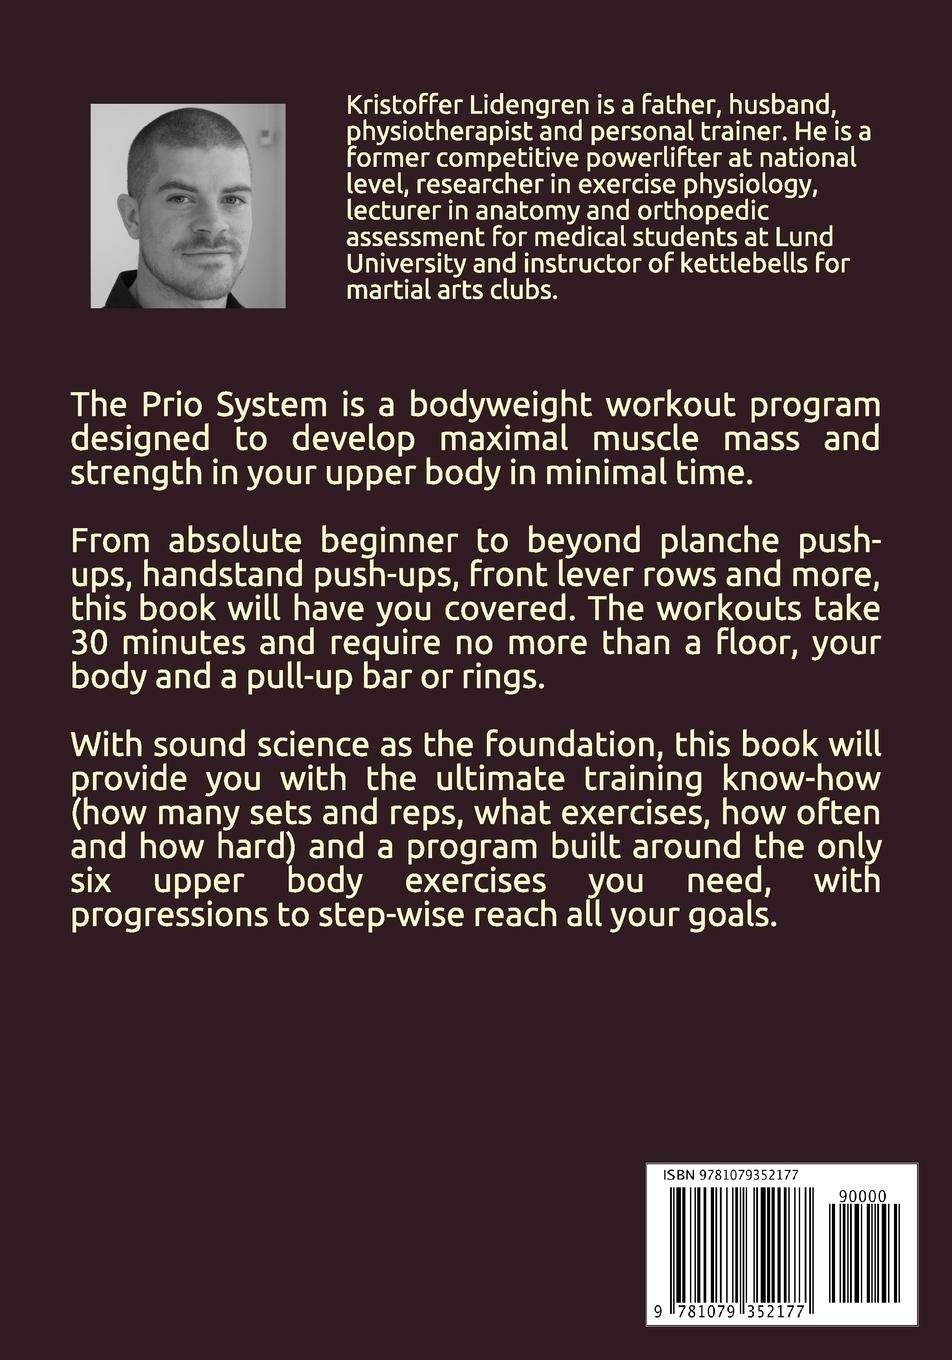 Buy Hypertrophy and calisthenics THE PRIO SYSTEM: A workout